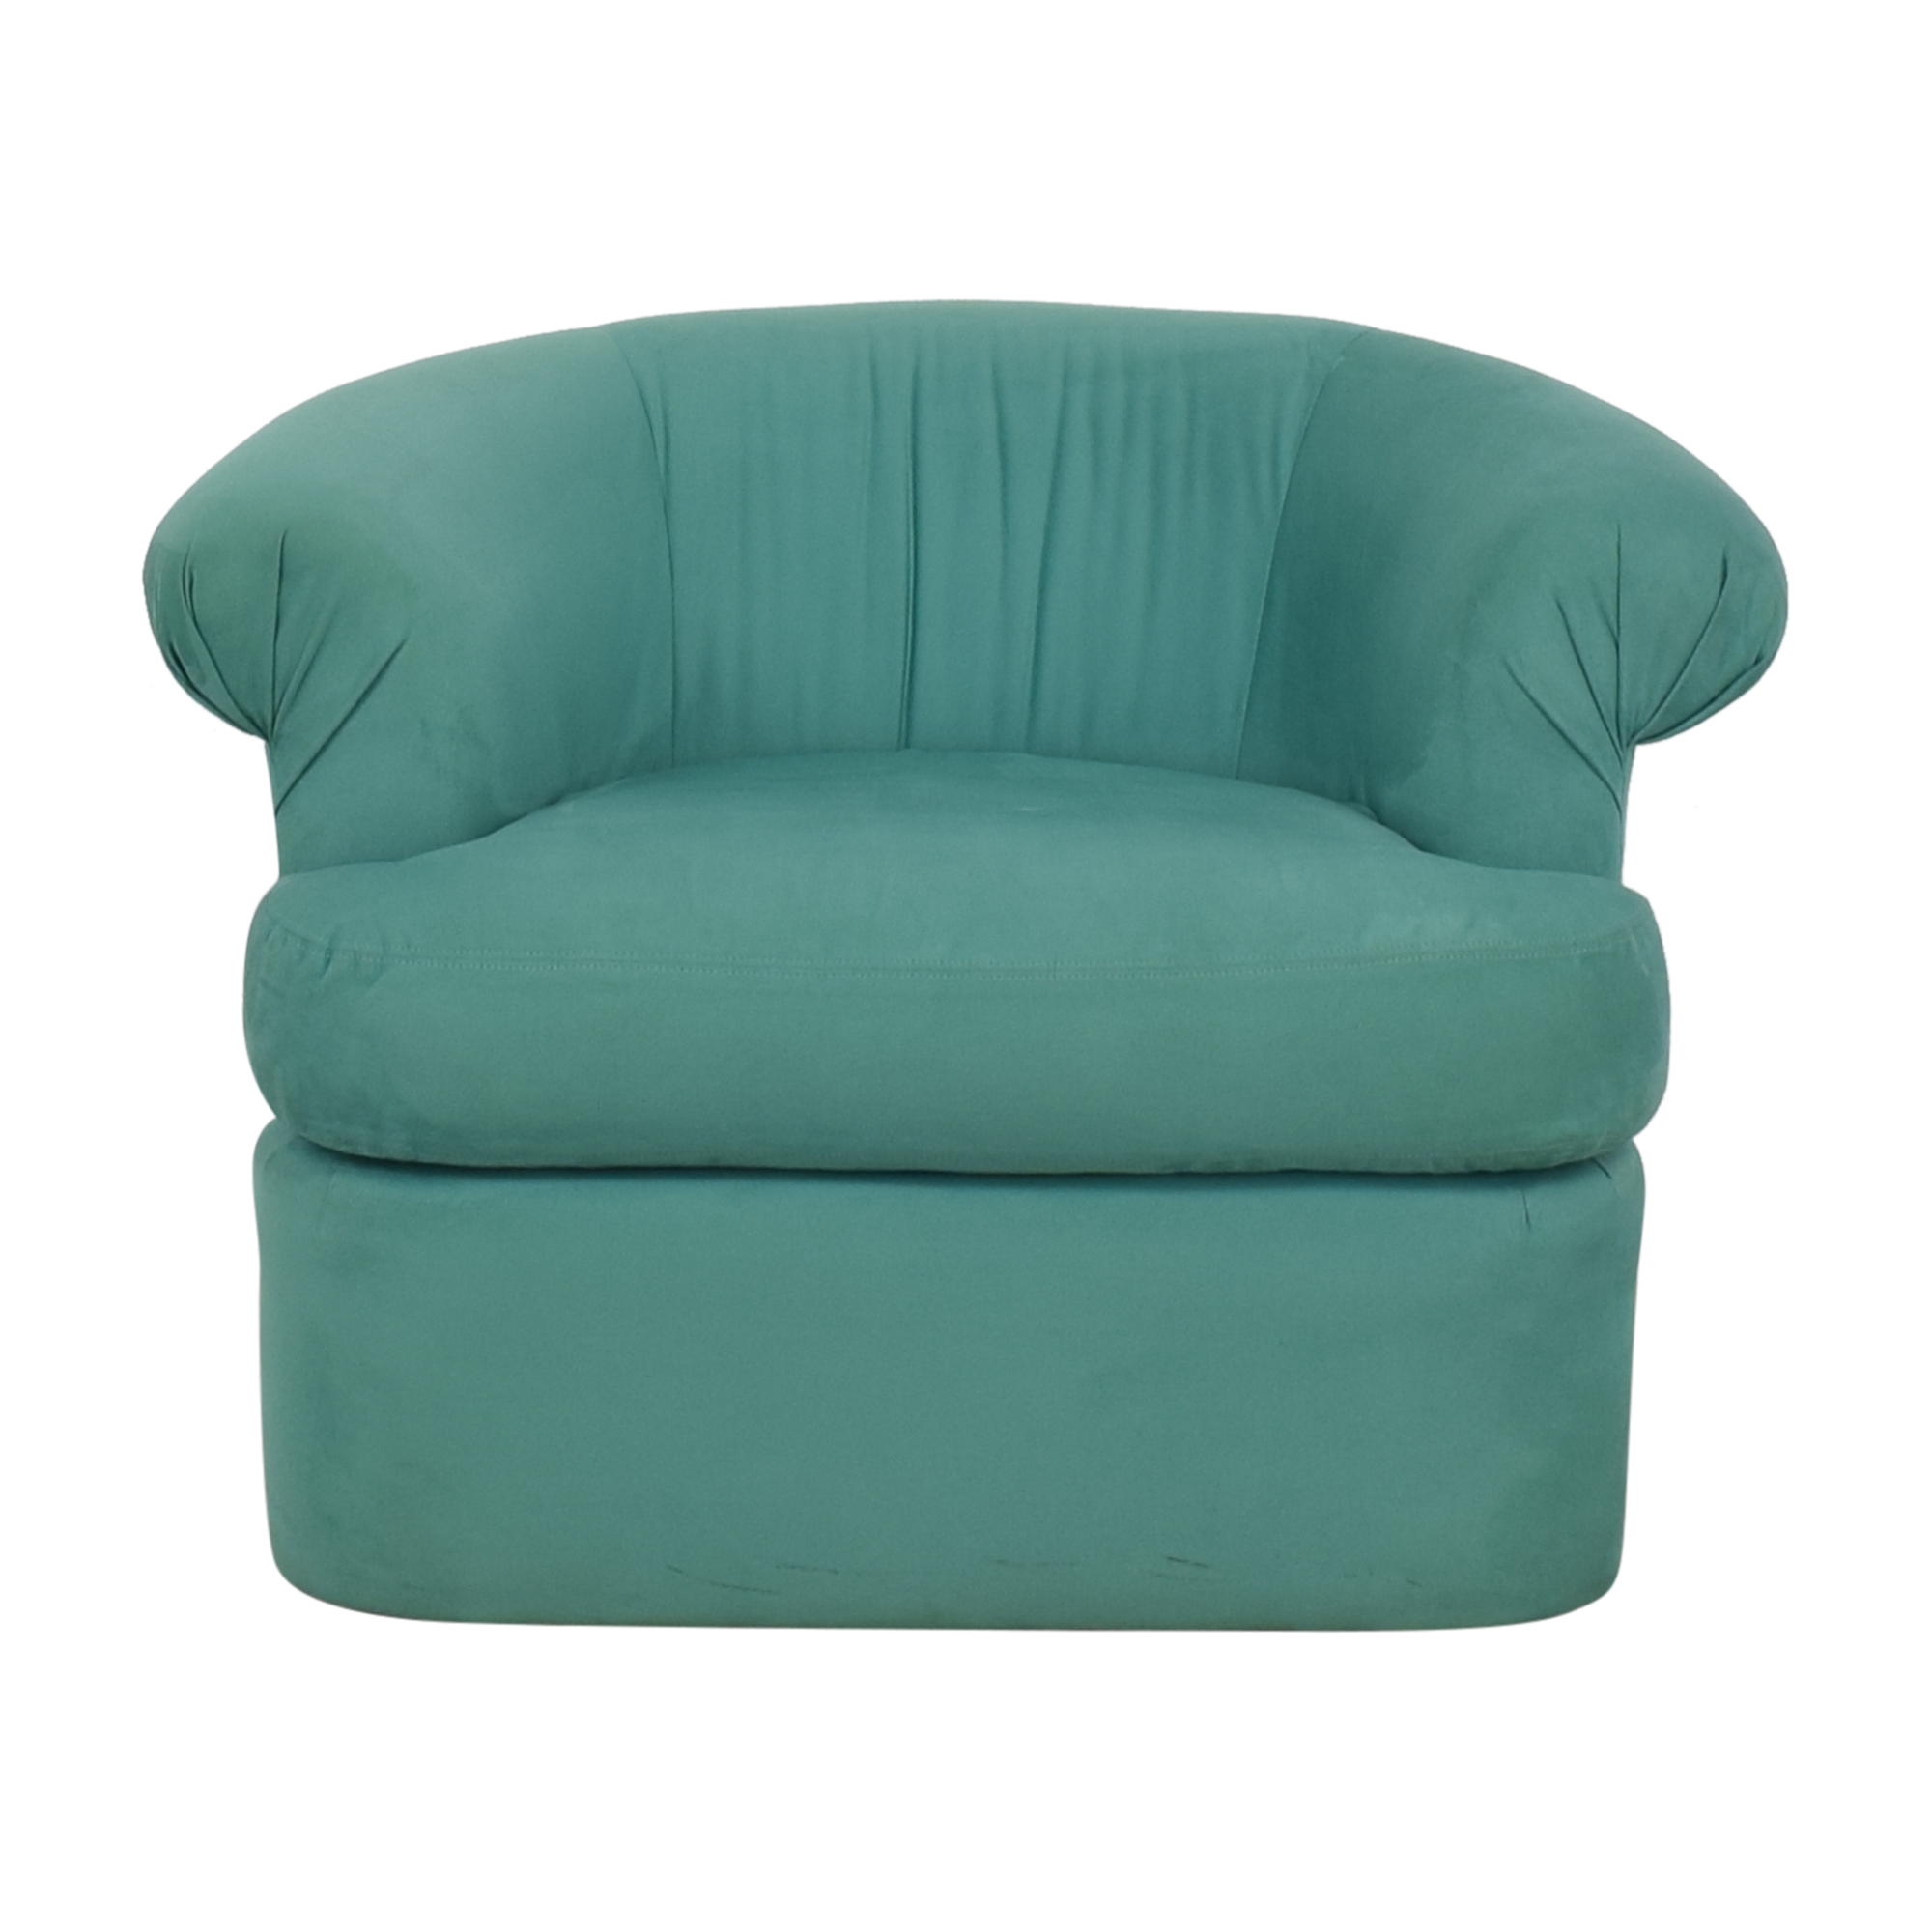 Directional Furniture Directional Furniture Suede Chair price